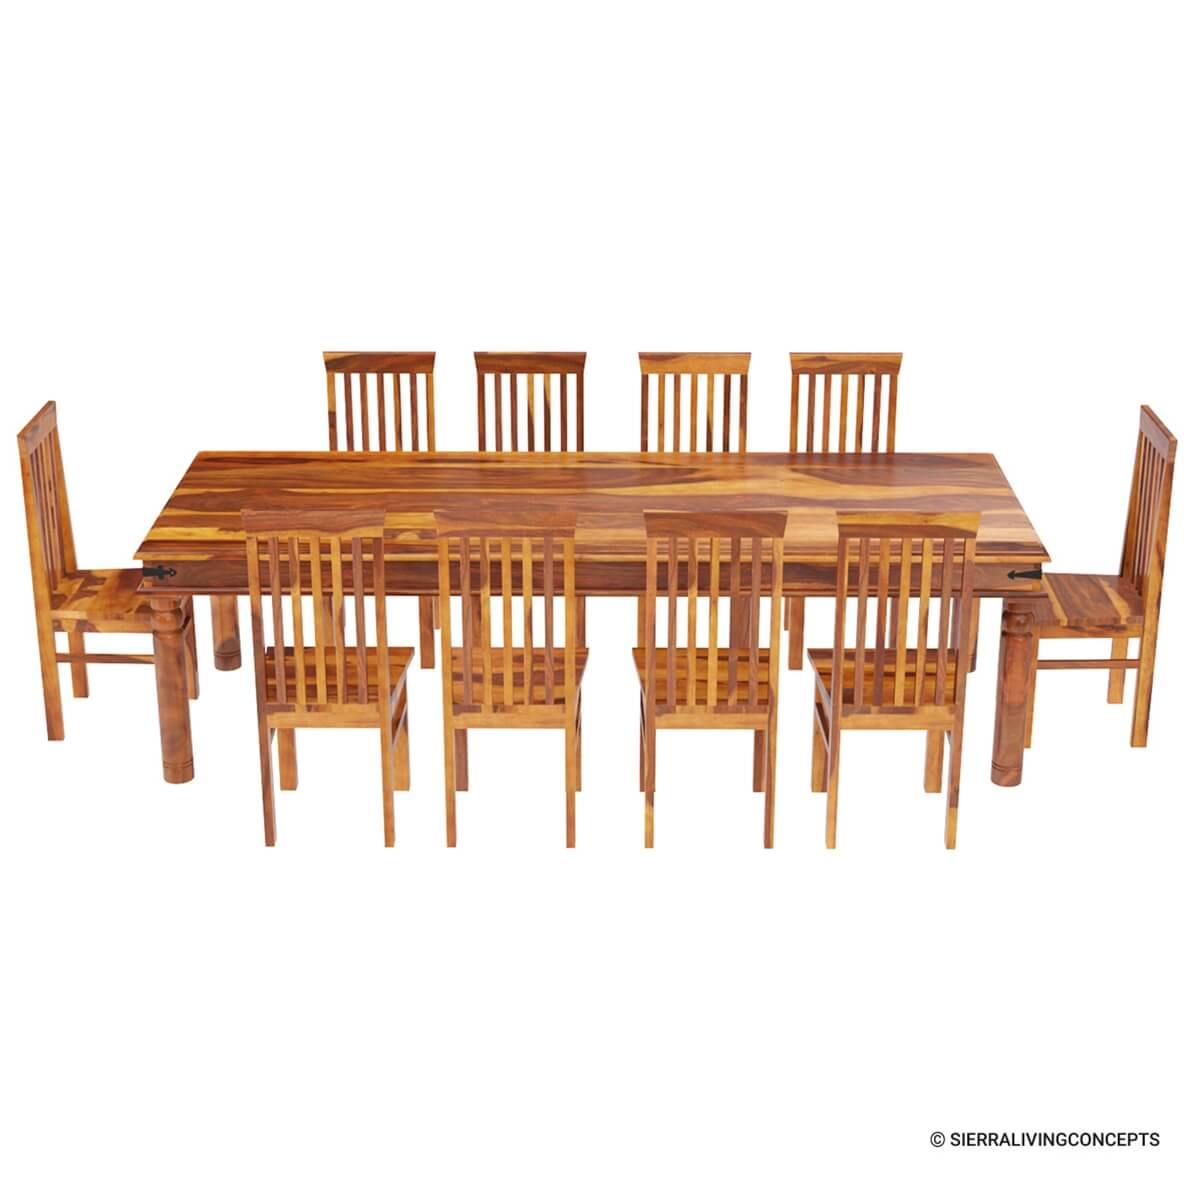 Lincoln Study Large Dining Room Table Chair Set For 10 People